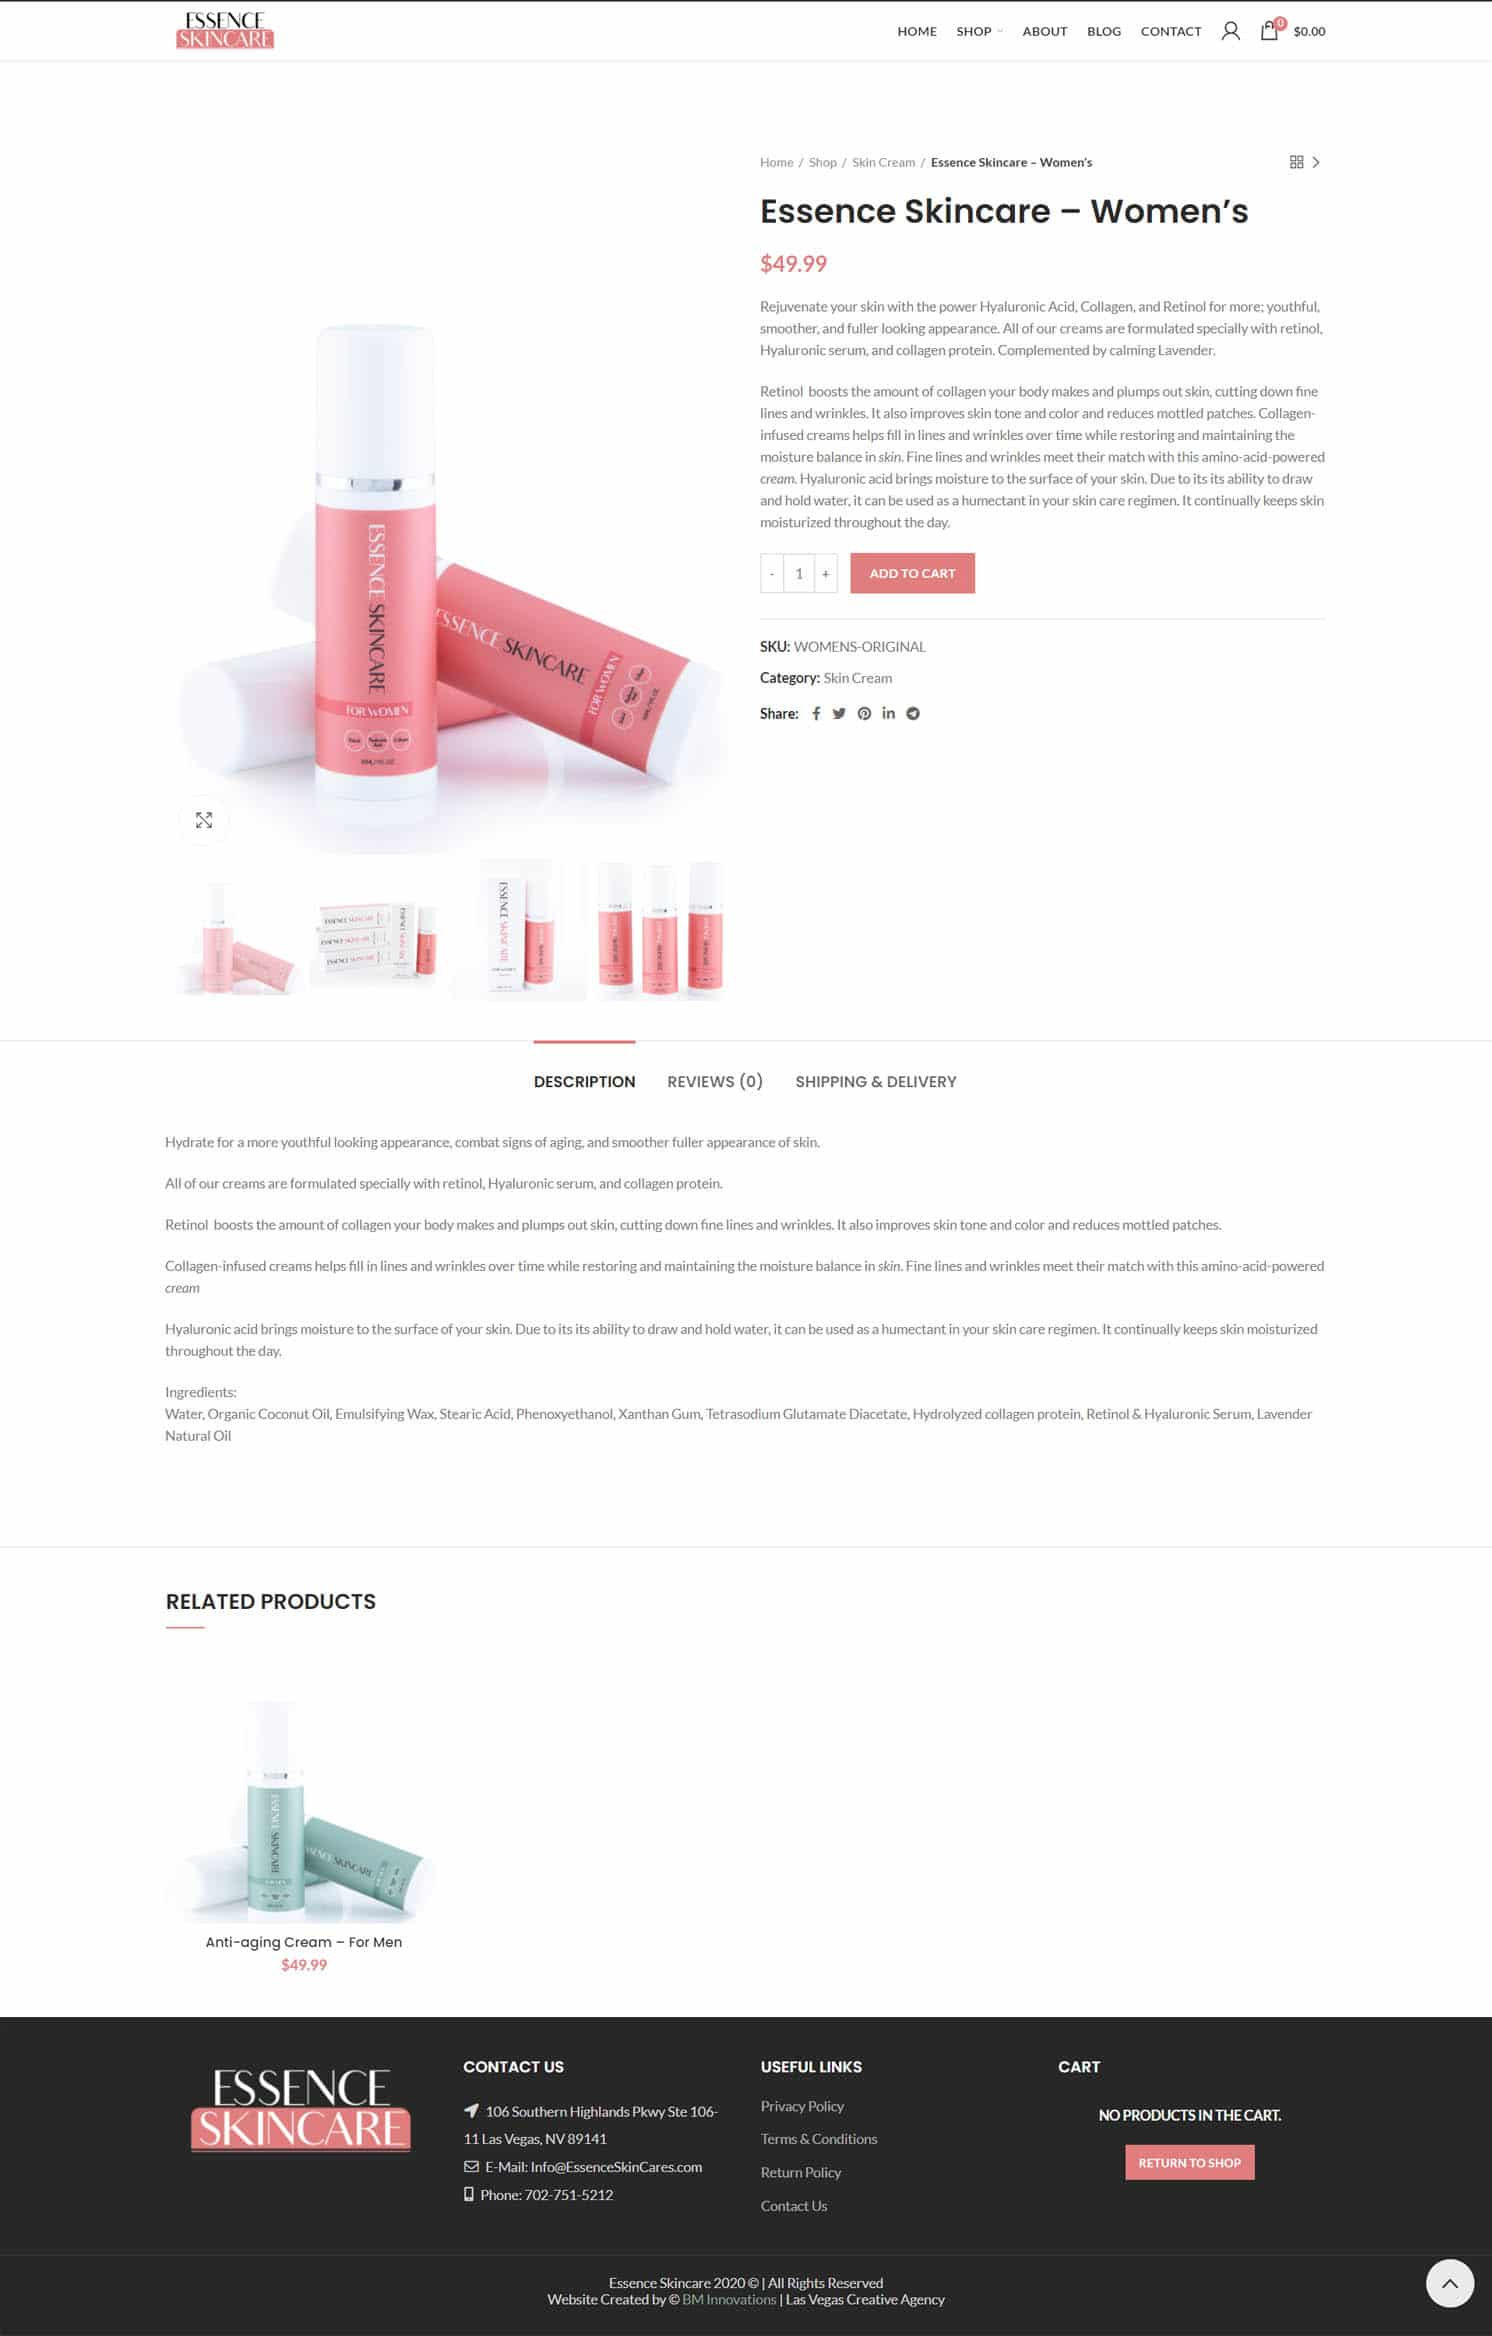 Essence Skincare Product Page